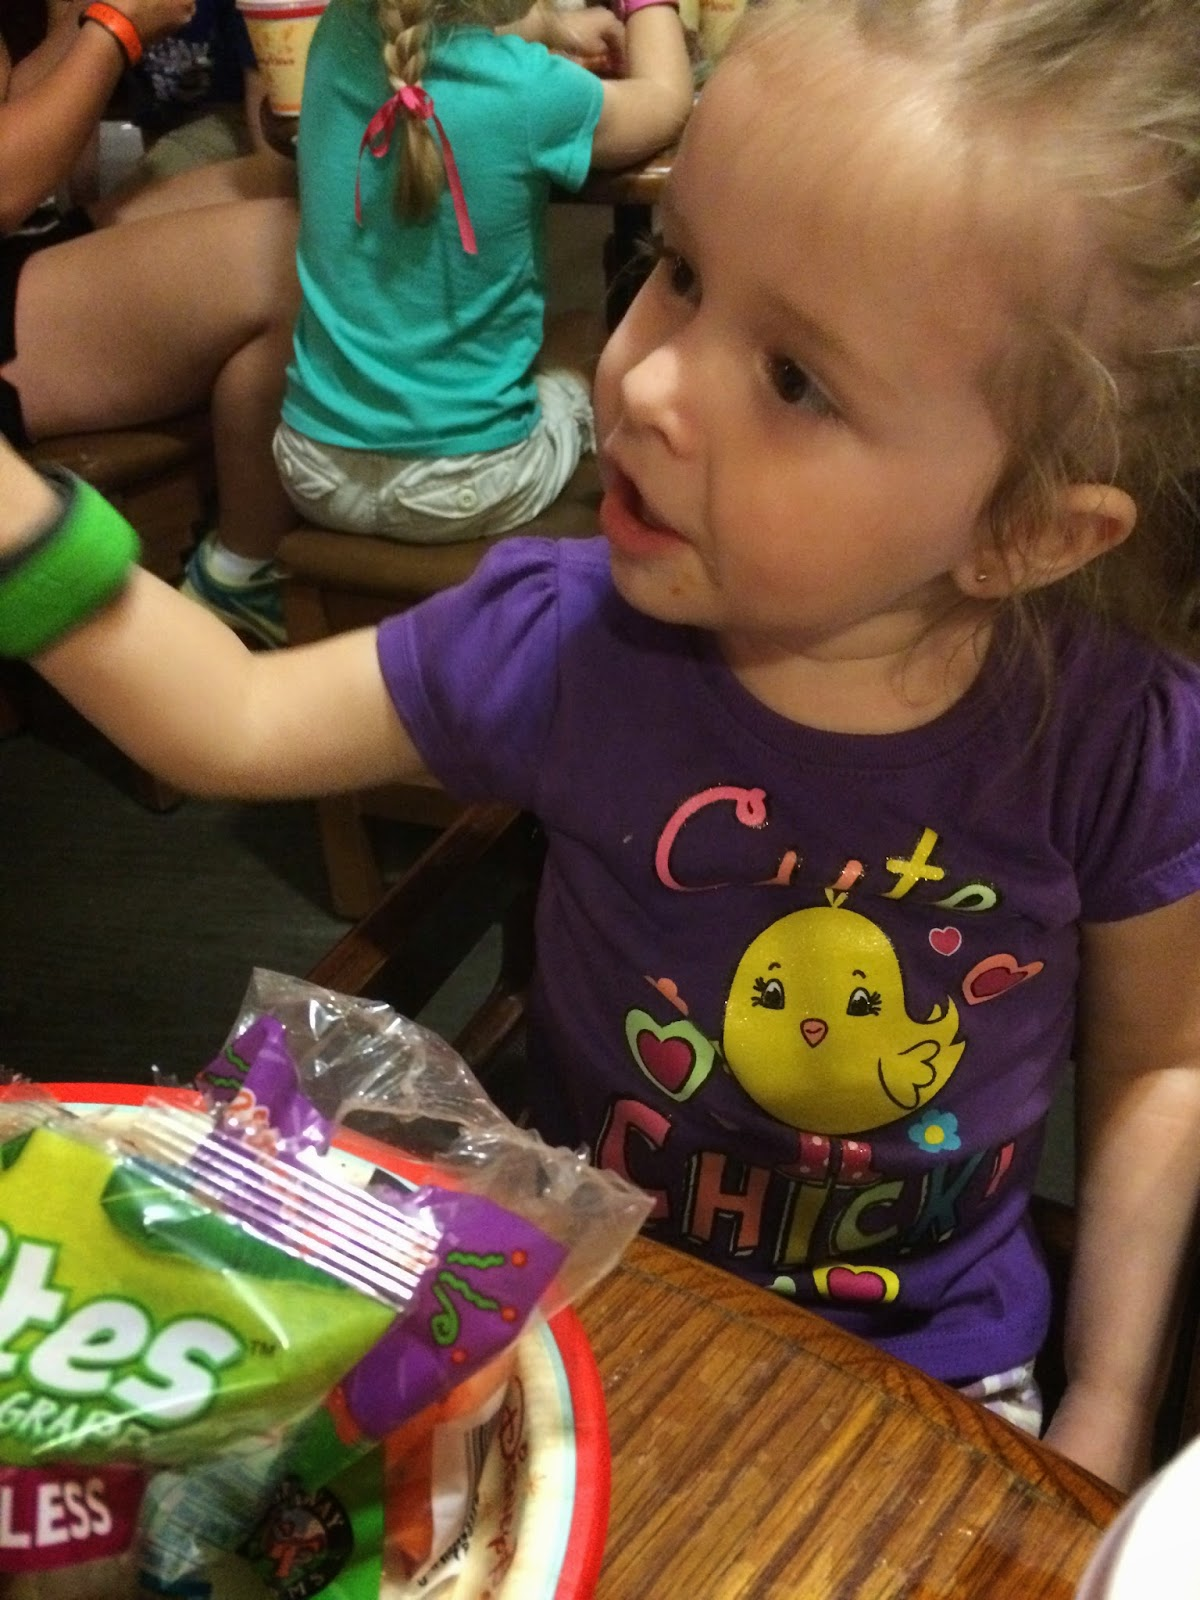 kiddo eating a good meal on Disney World vacation